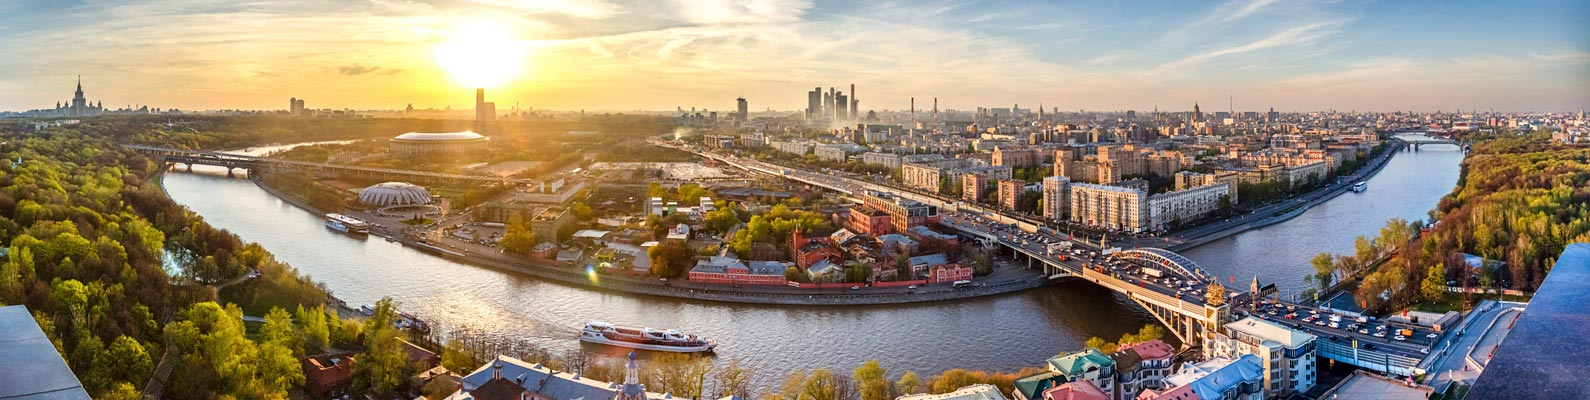 moscow1590 400 3